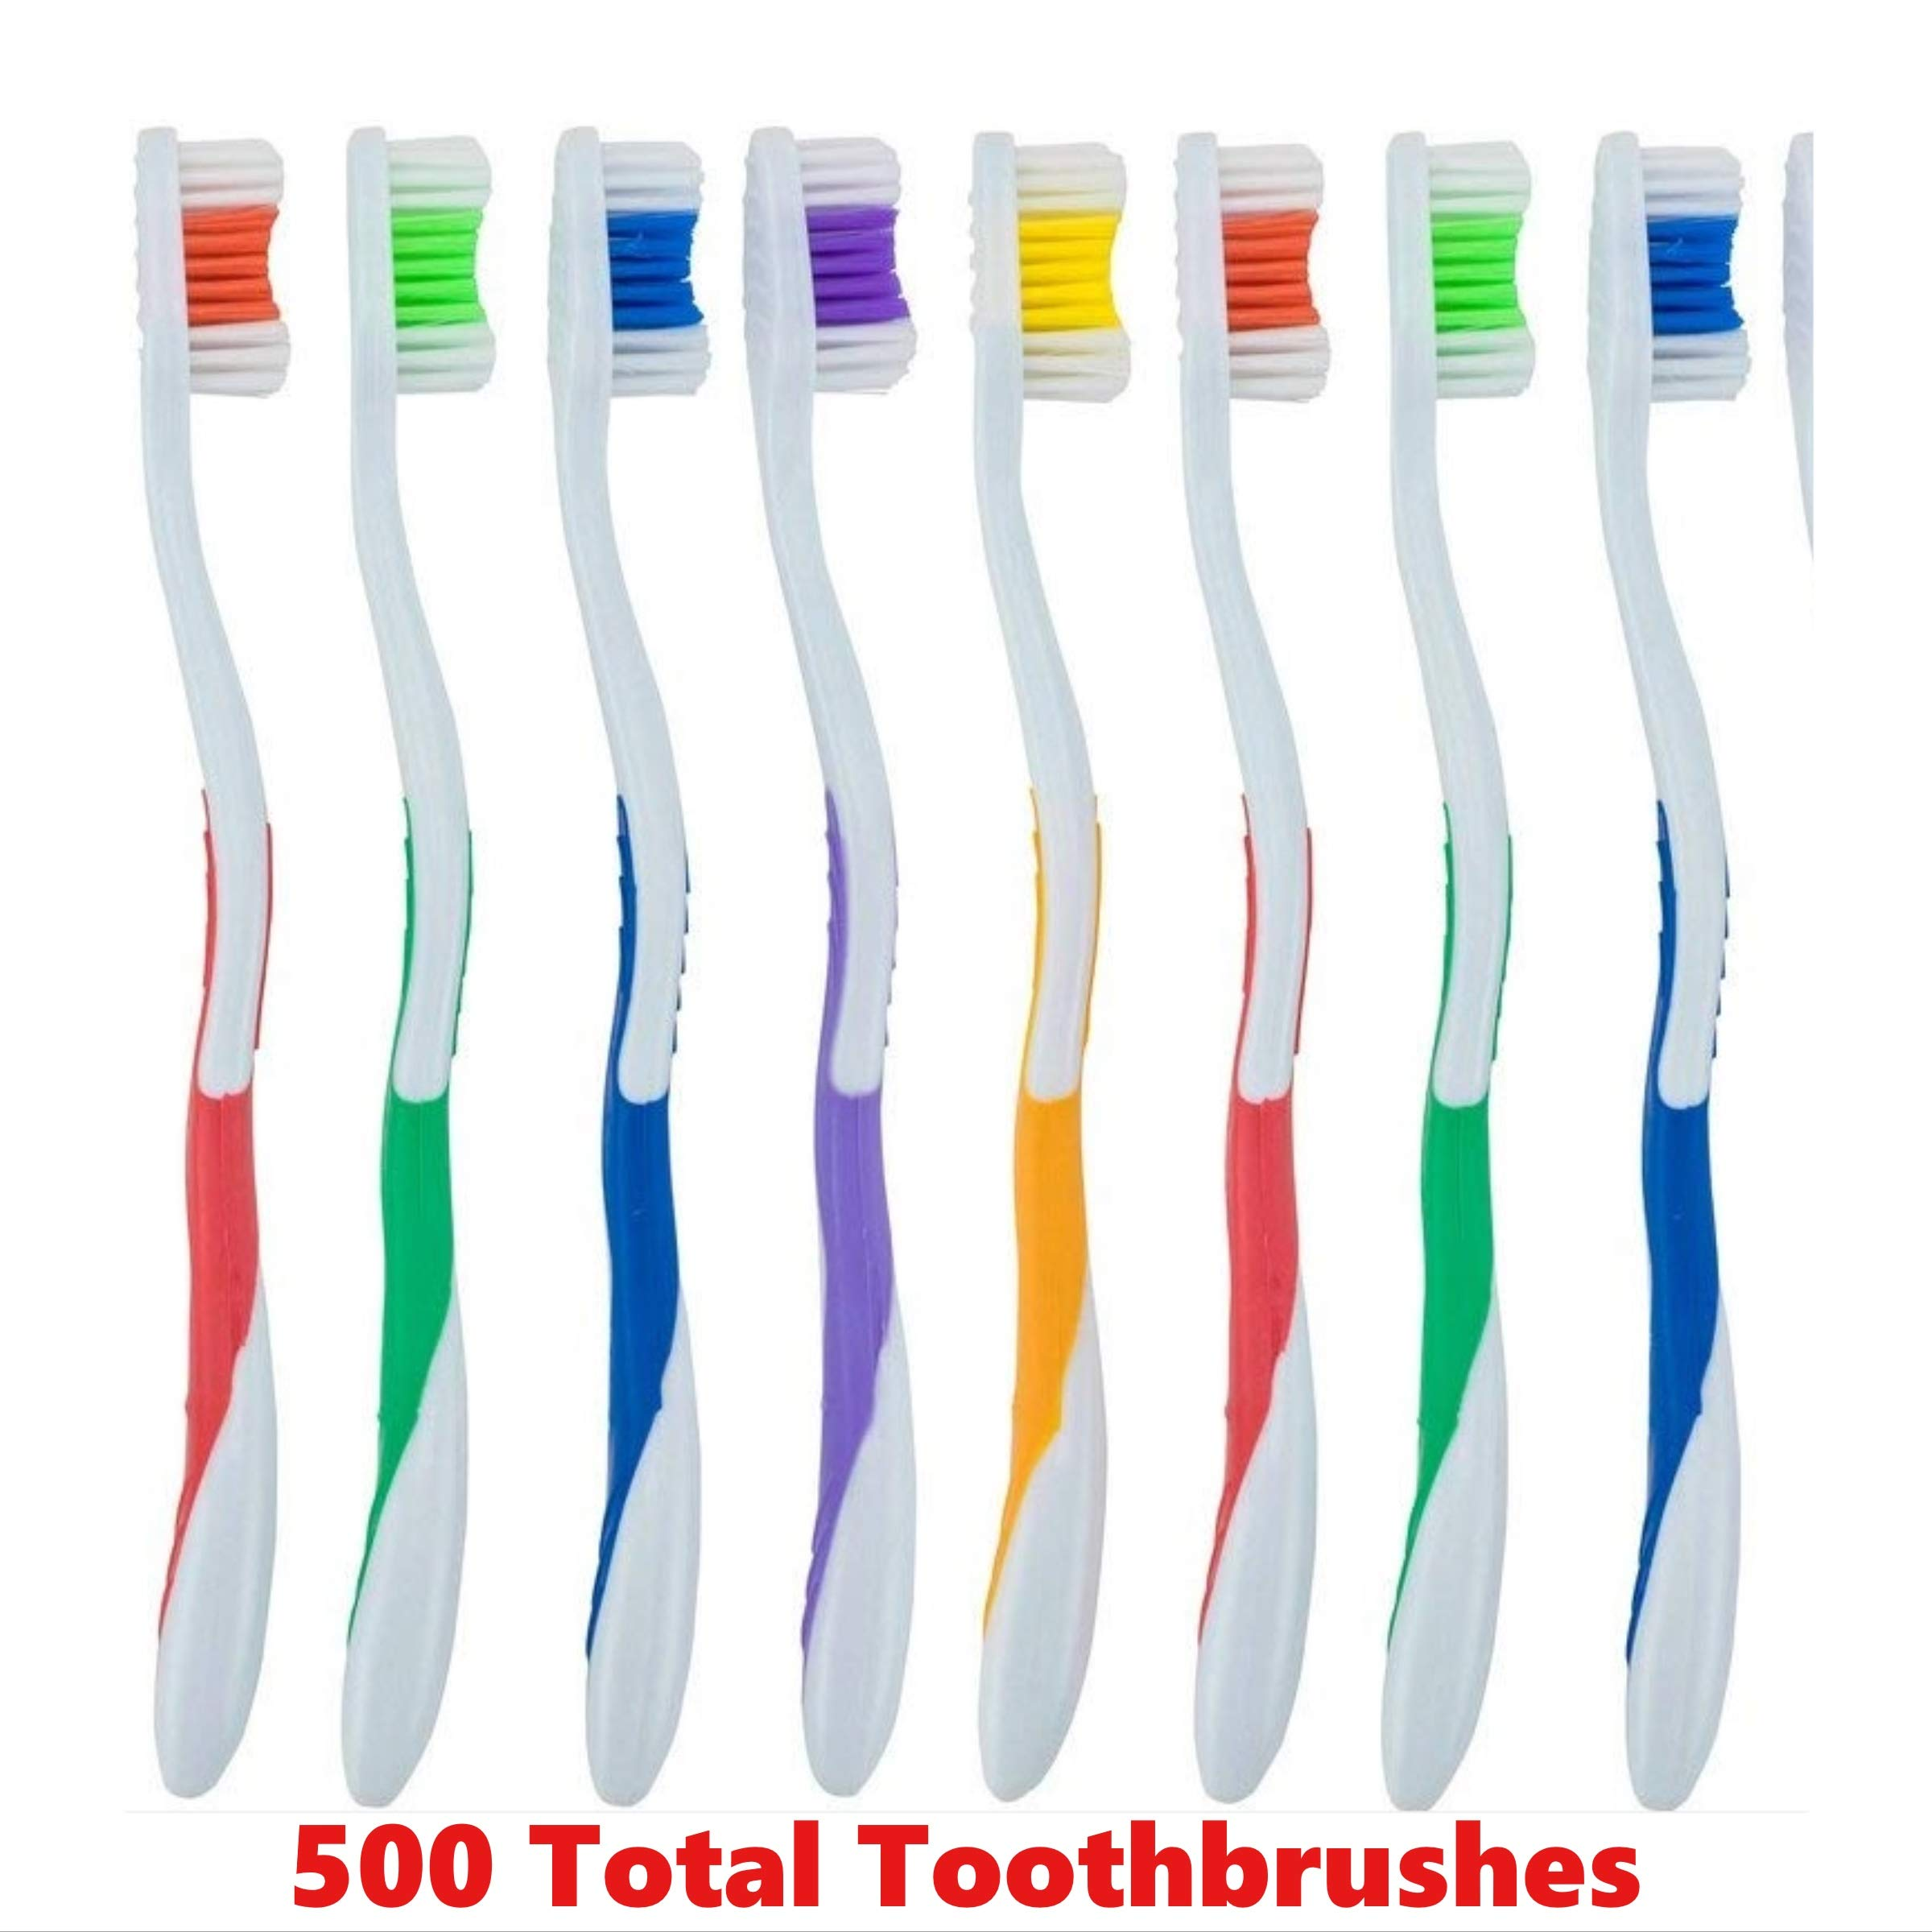 500 Pack Toothbrushes Individually Wrapped Standard Medium Bristle, for Travel, Hotel, Guests, Disposable use and More